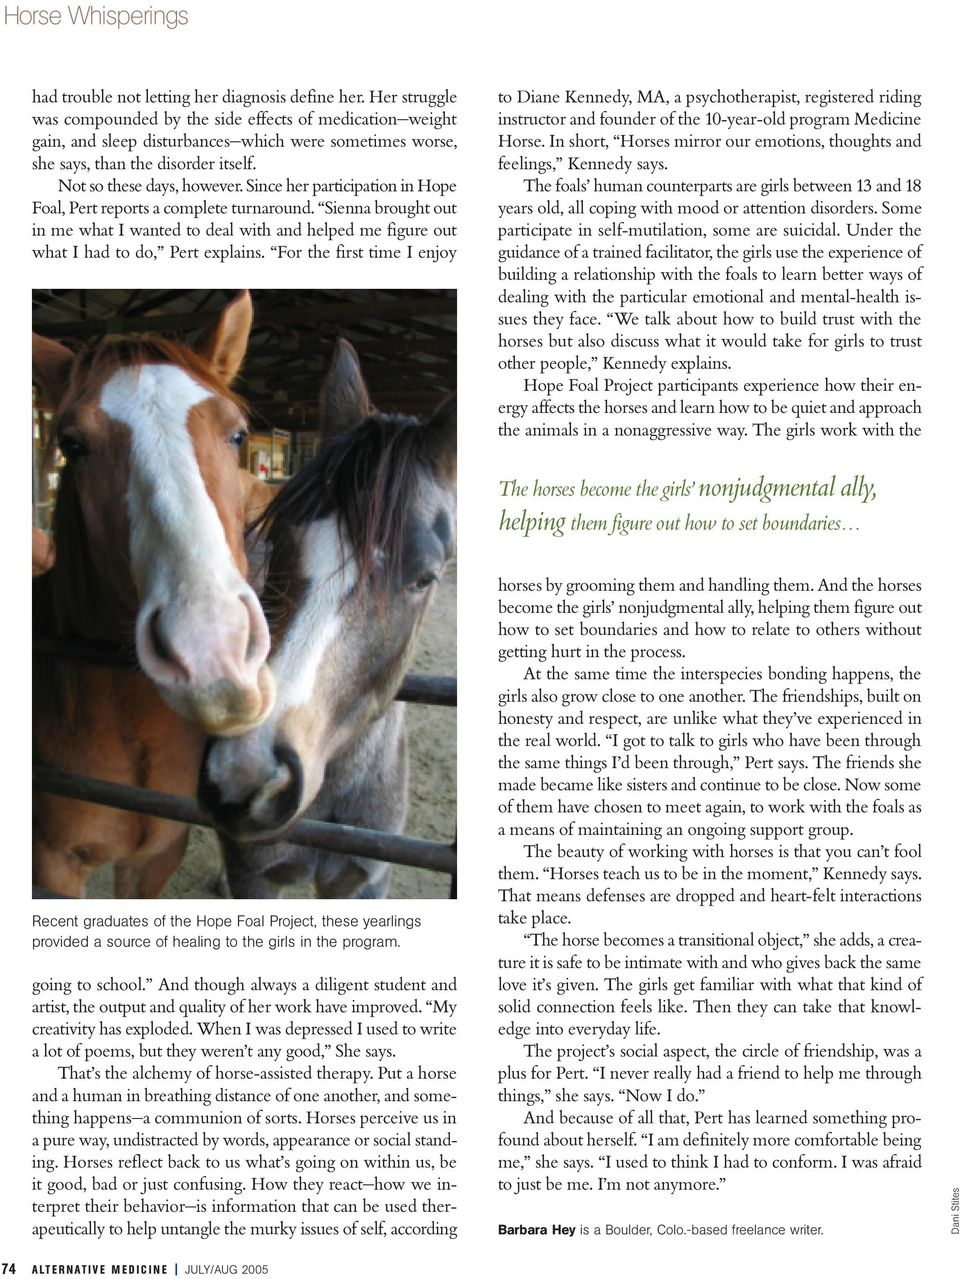 Since her participation in Hope Foal, Pert reports a complete turnaround. Sienna brought out in me what I wanted to deal with and helped me figure out what I had to do, Pert explains.